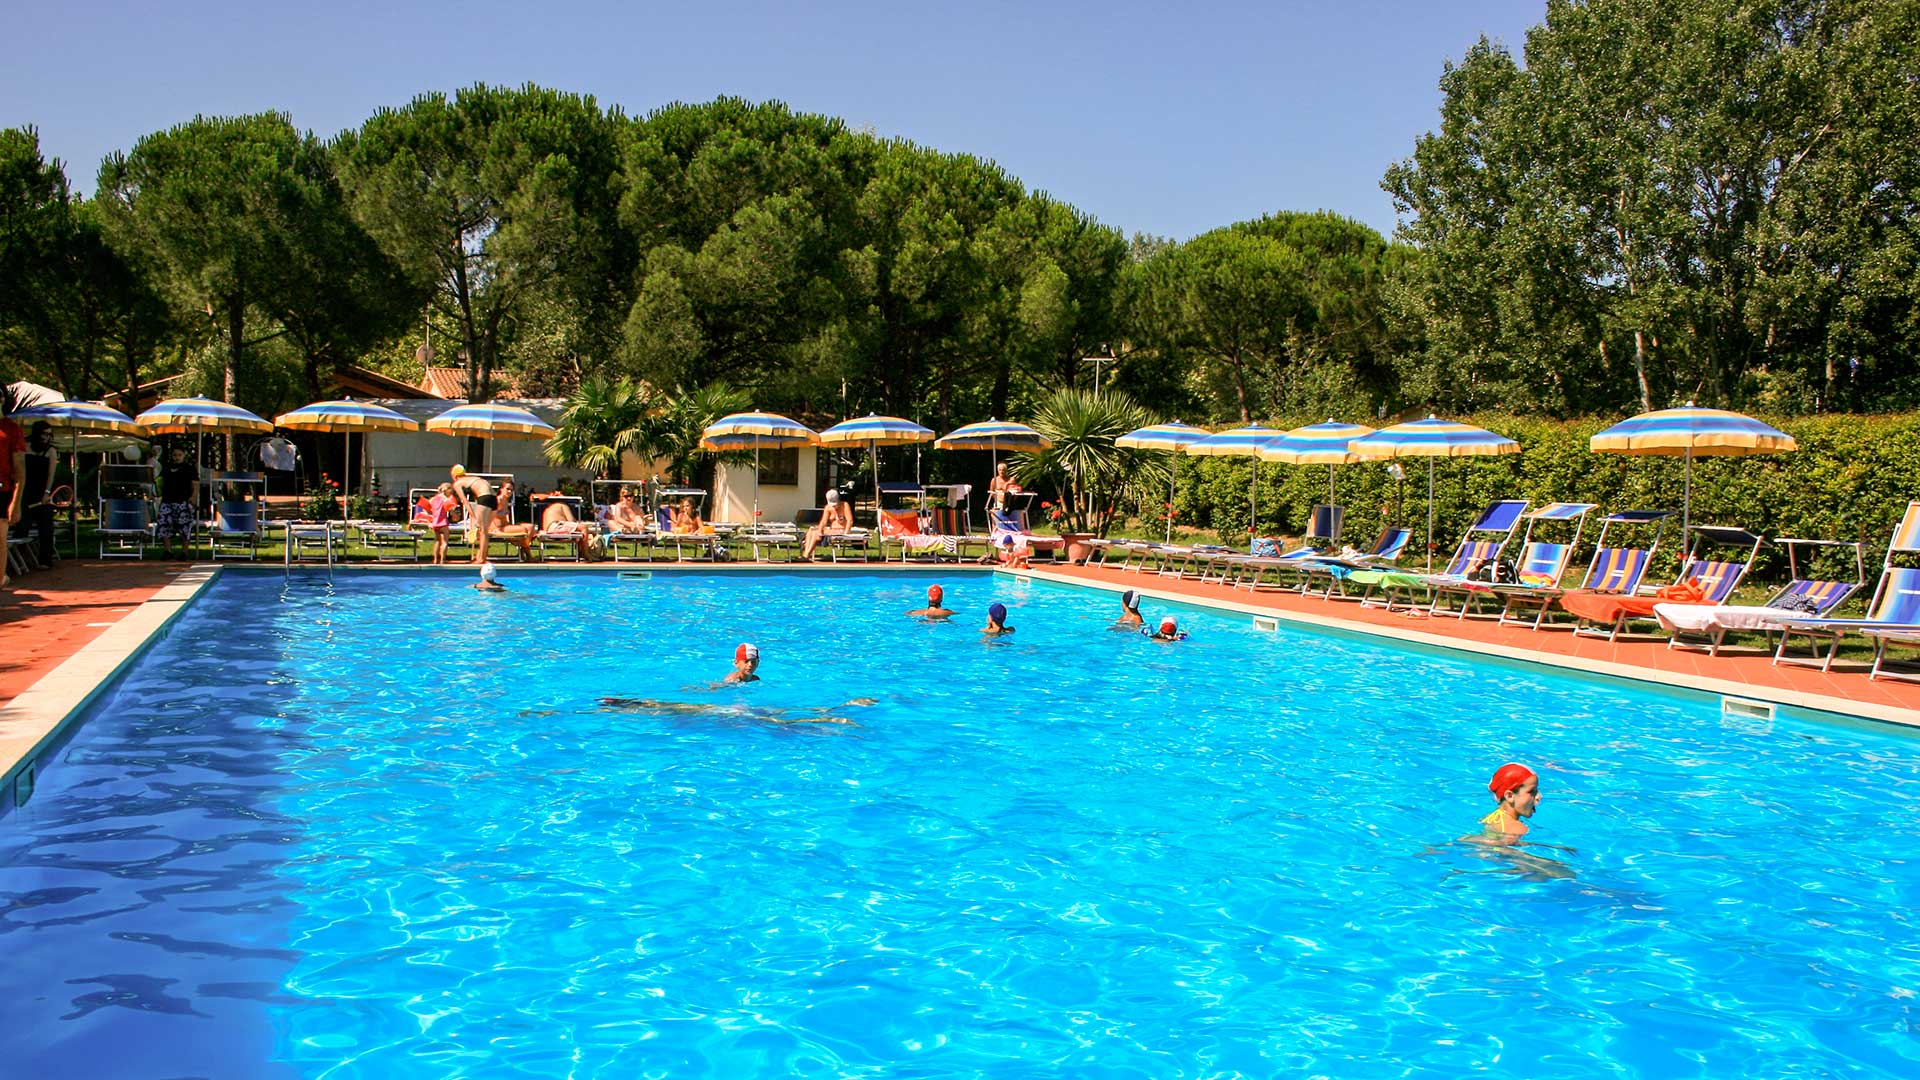 Swimmingpool at Badiaccia Camping Village